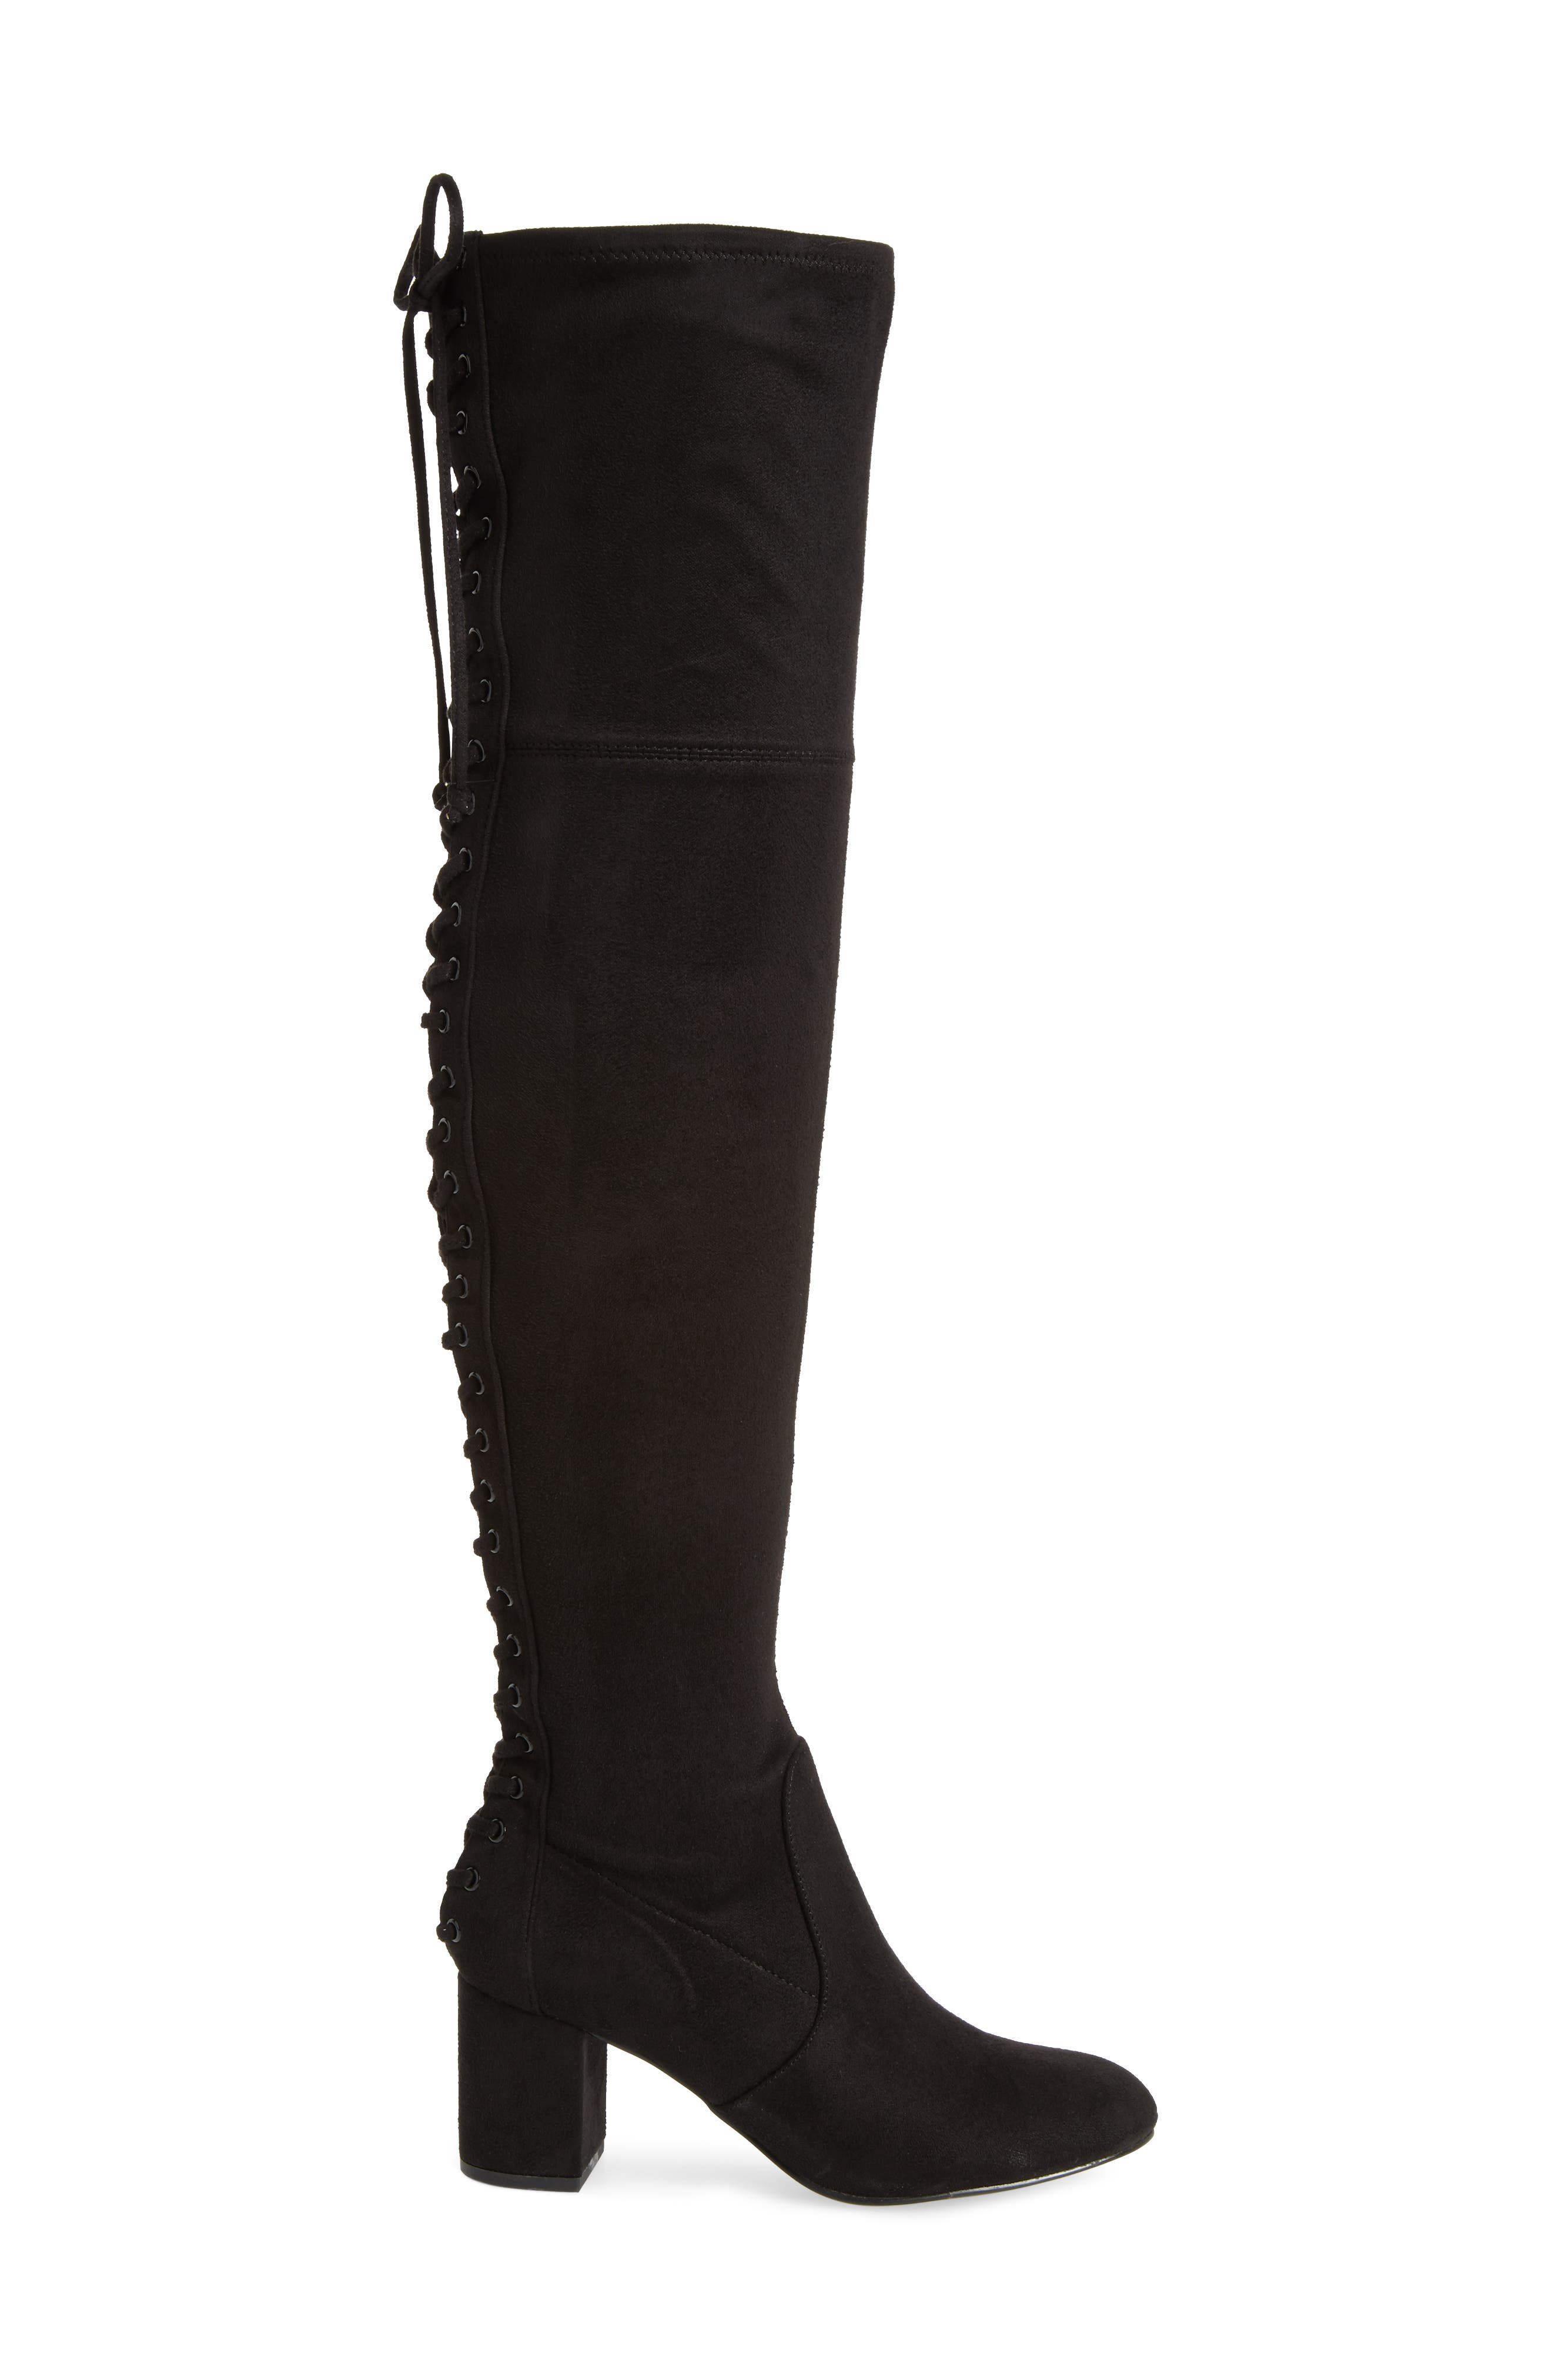 Ollie Over the Knee Boot,                             Alternate thumbnail 3, color,                             Black Microsuede